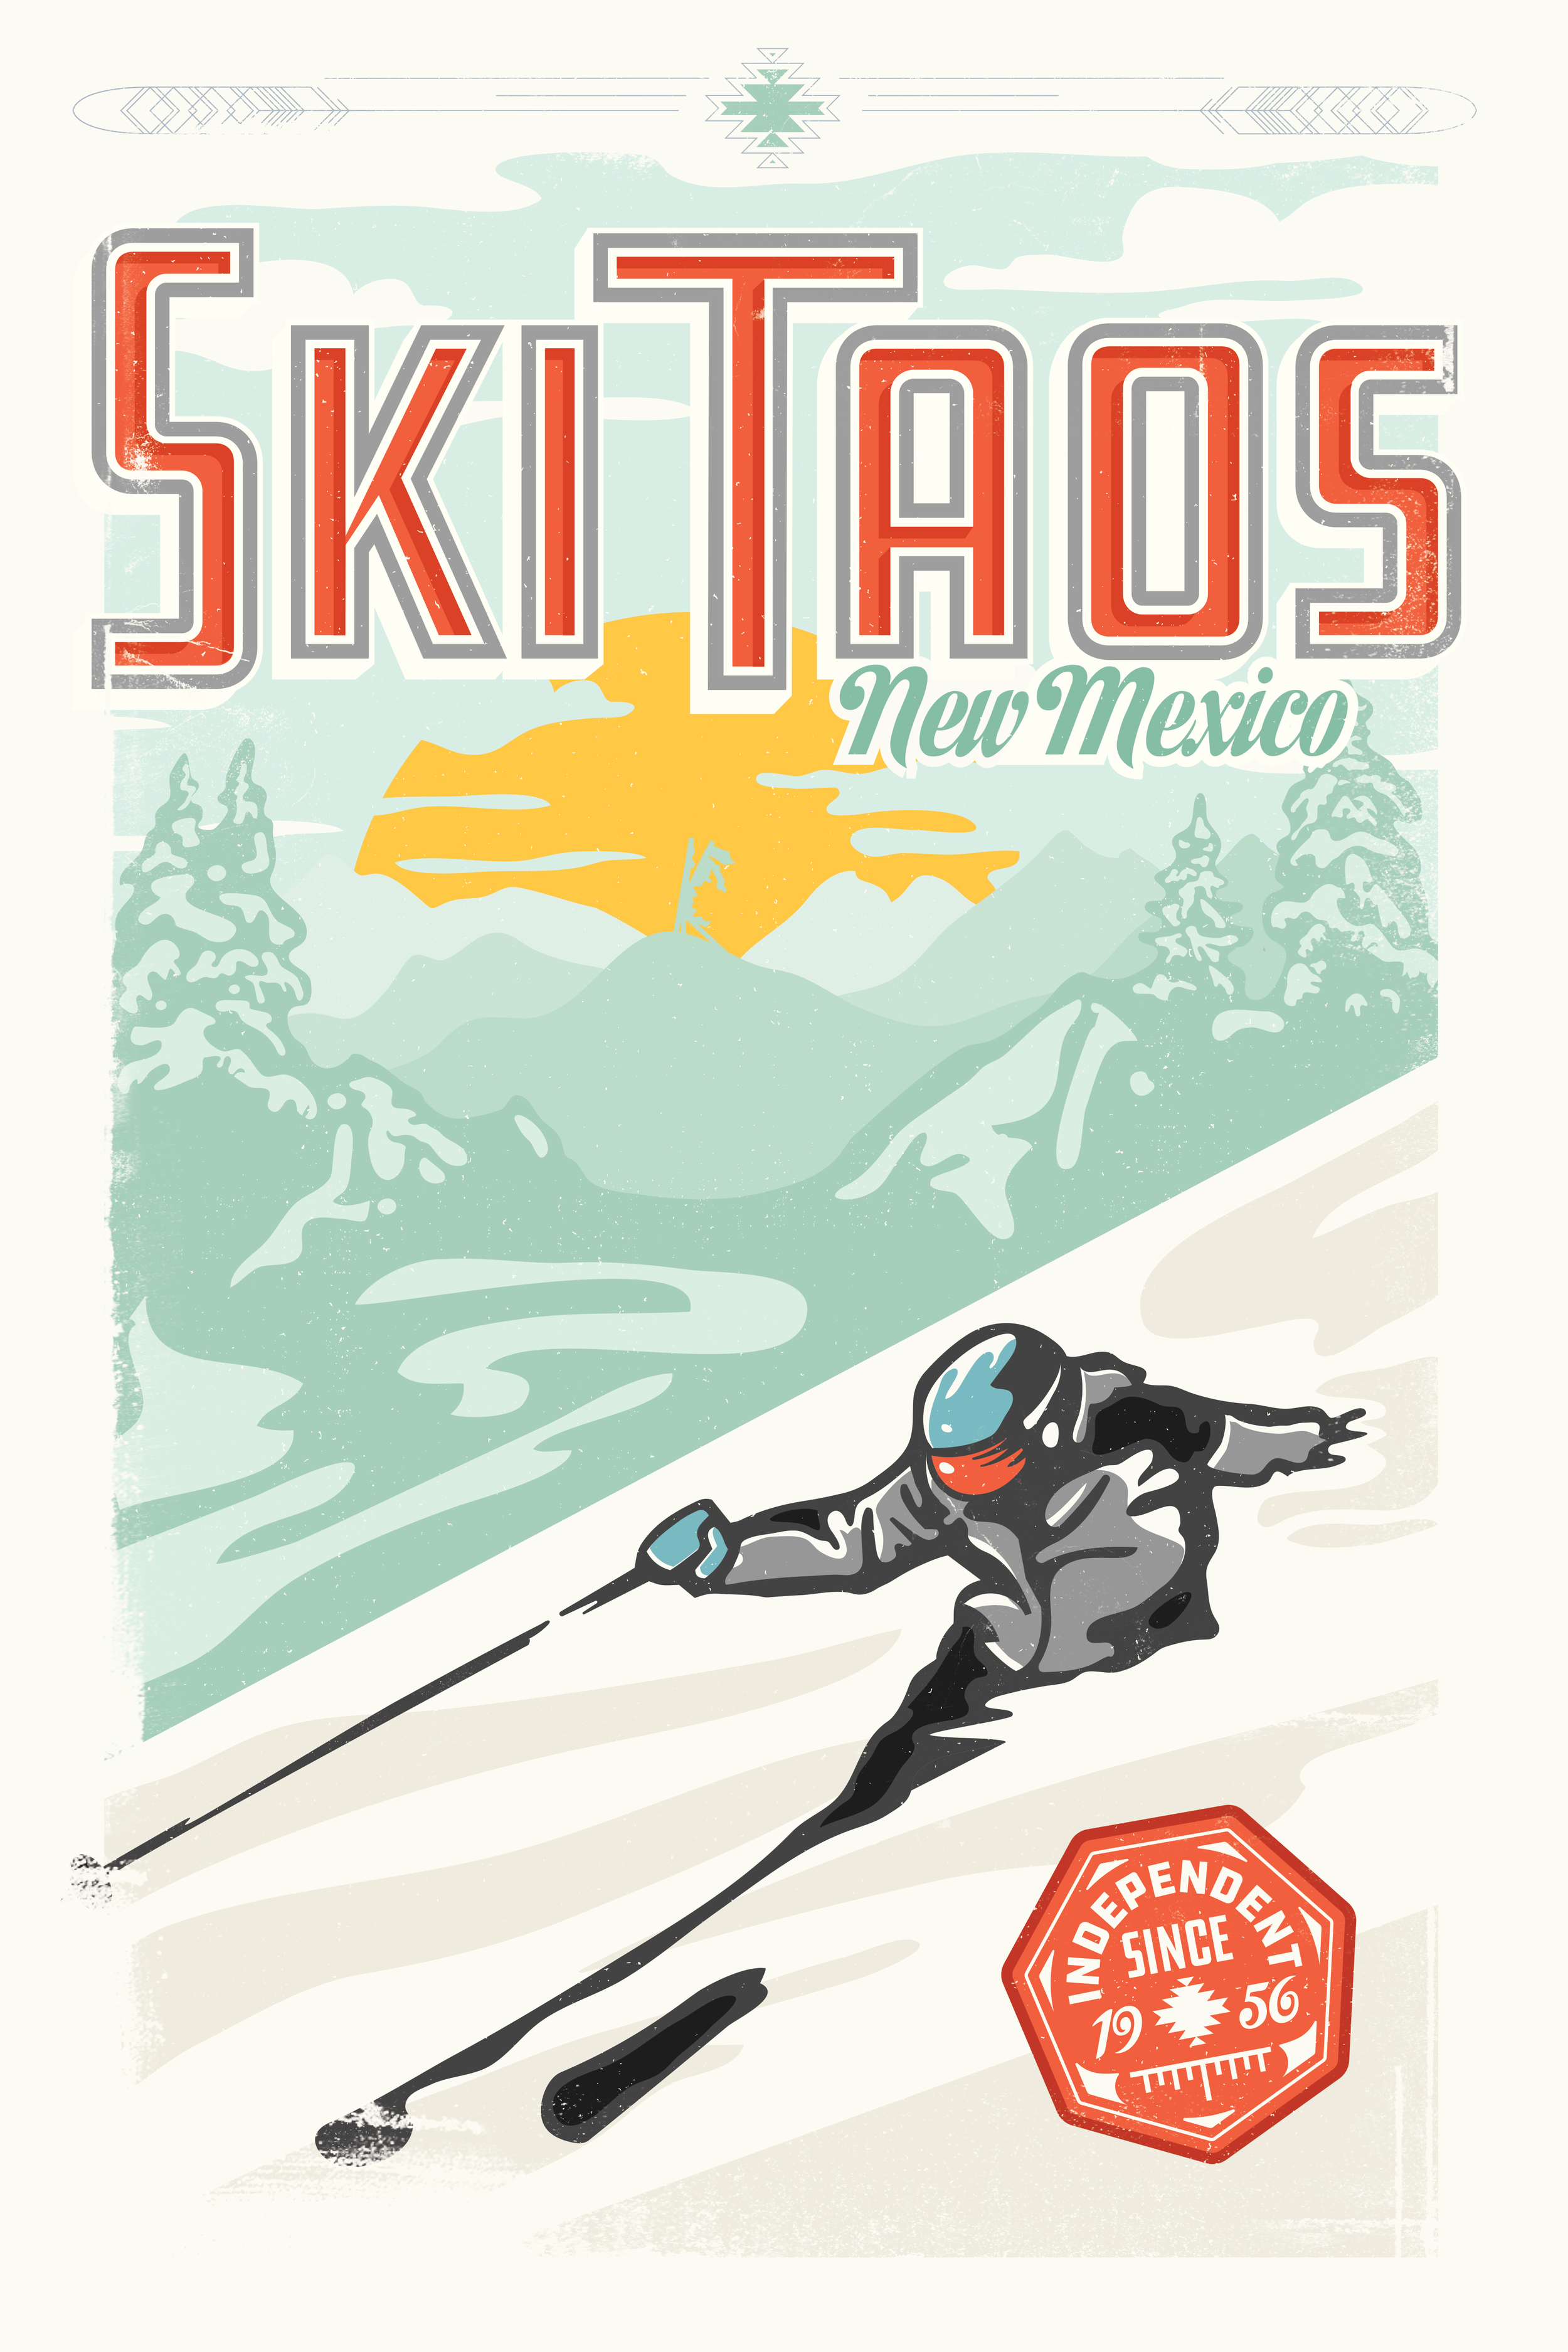 Taos_Poster_v4_Page_1.png